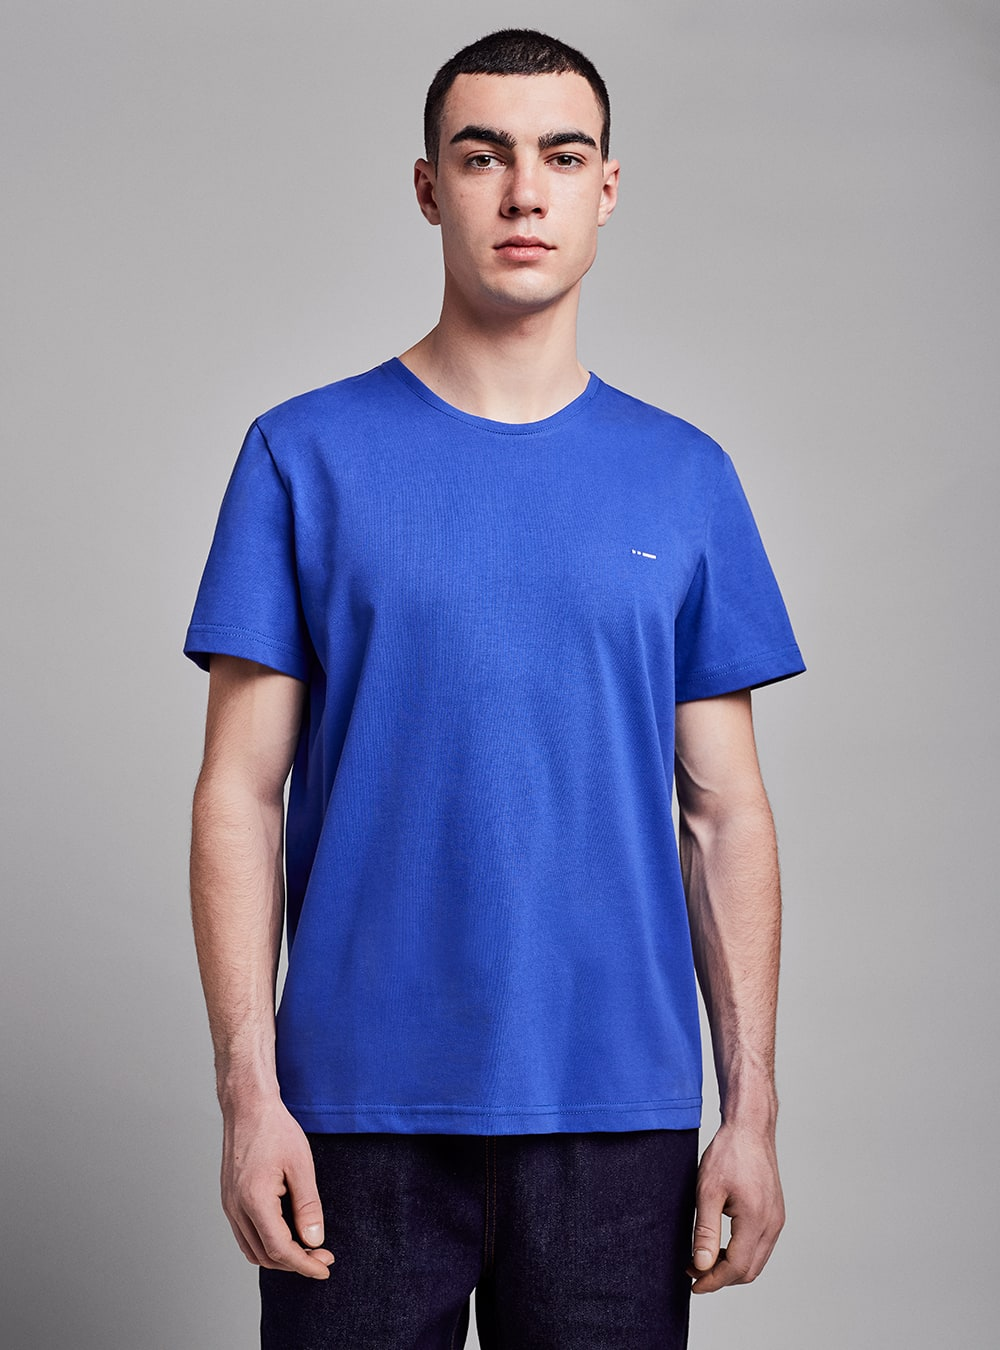 Essential t-shirt (blue) in organic cotton, made in Portugal by wetheknot.